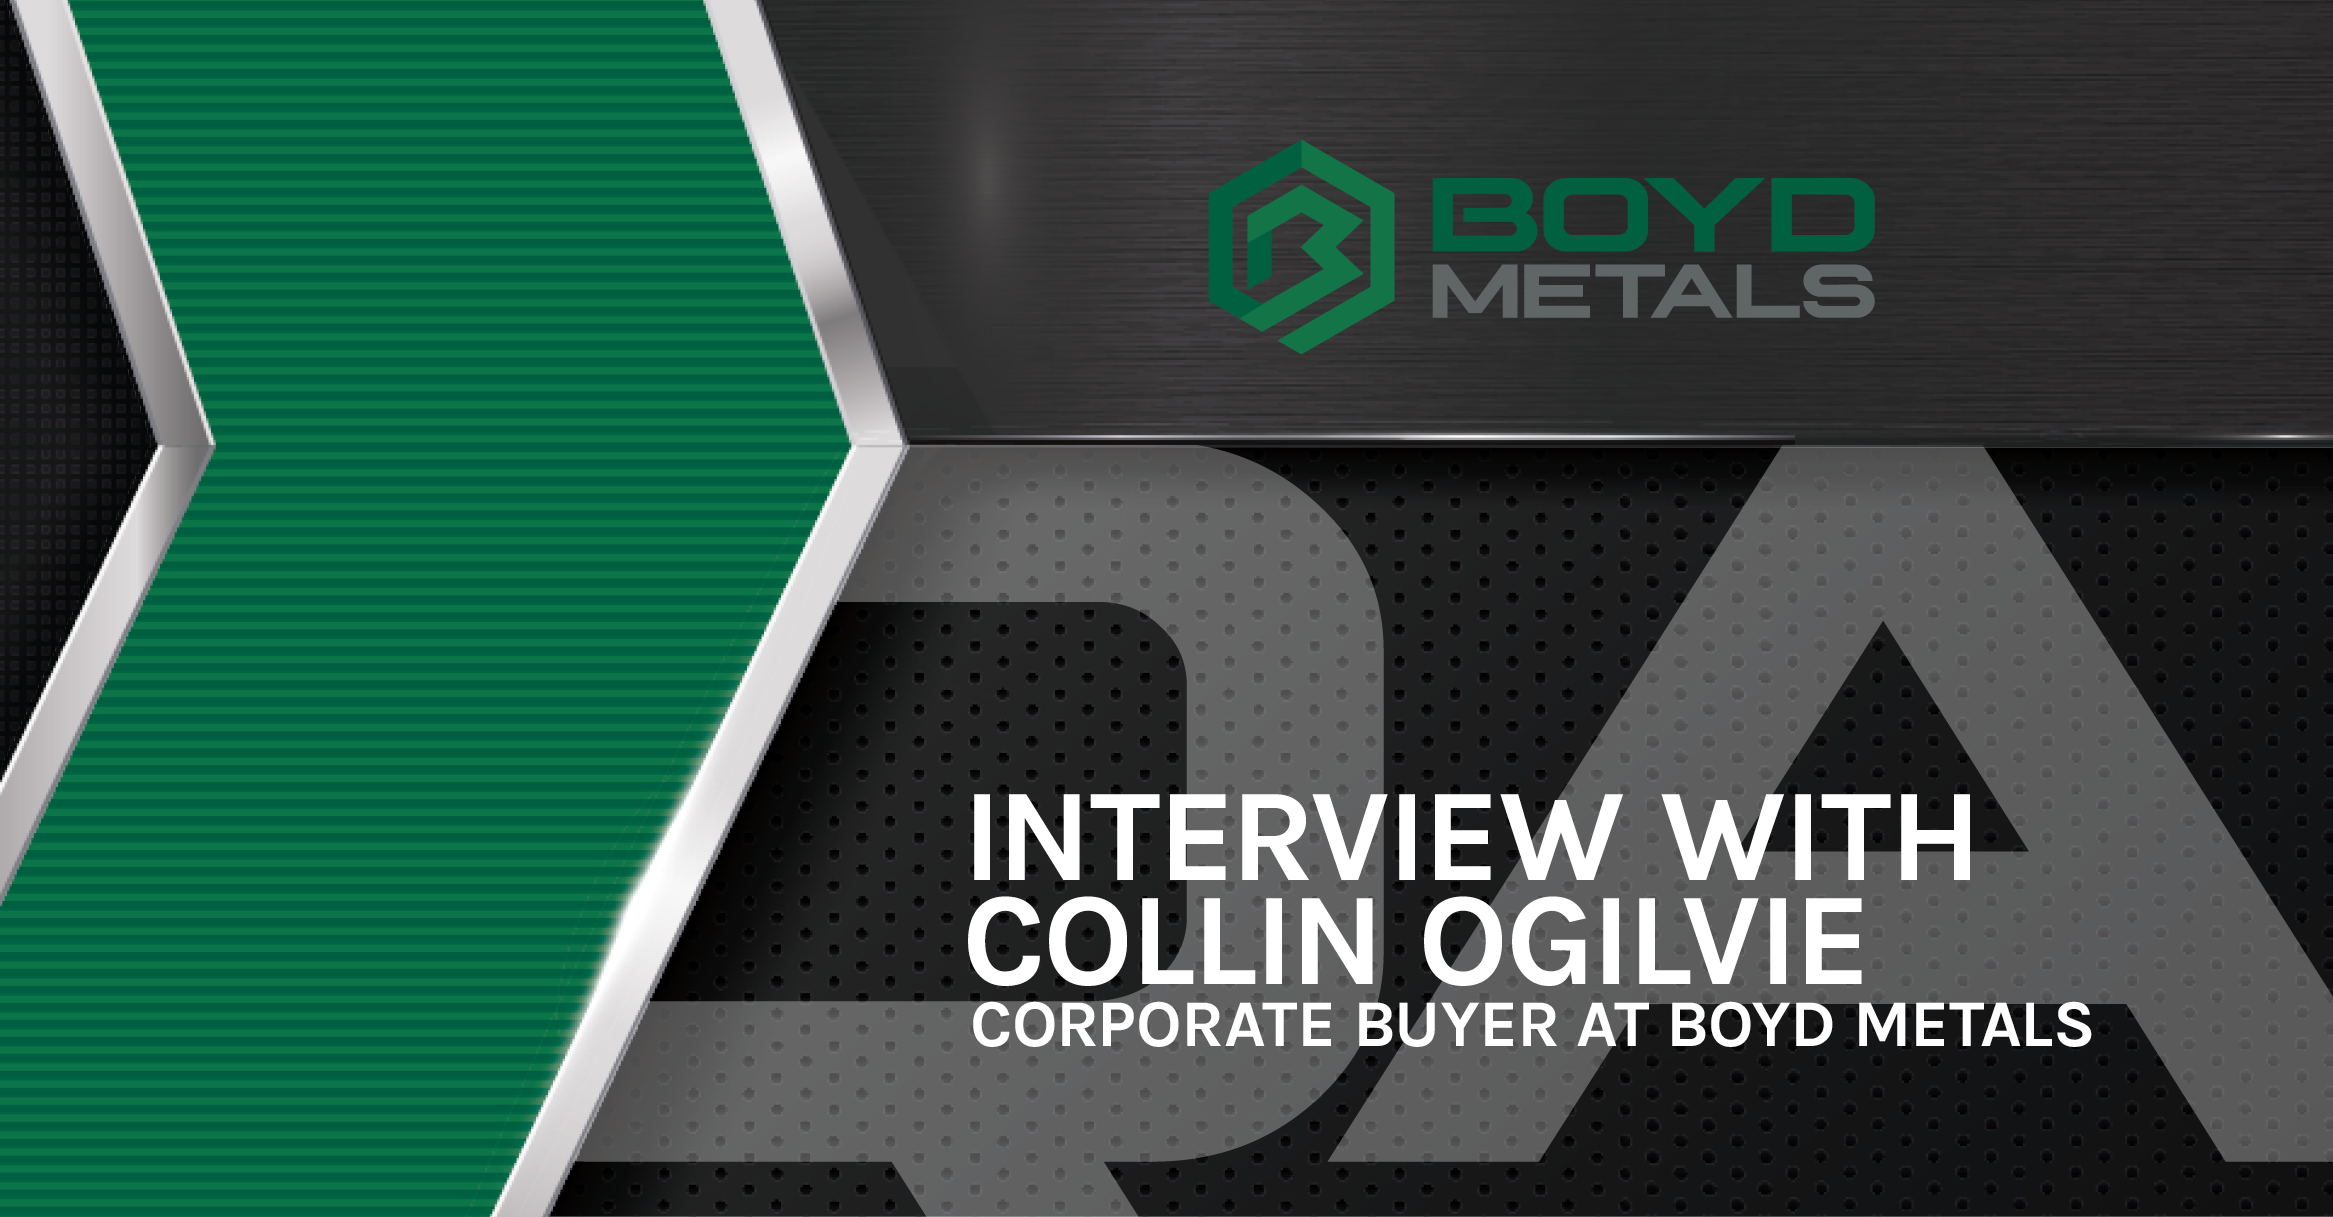 20190906-boyd-interview-with-collin-ogilvie